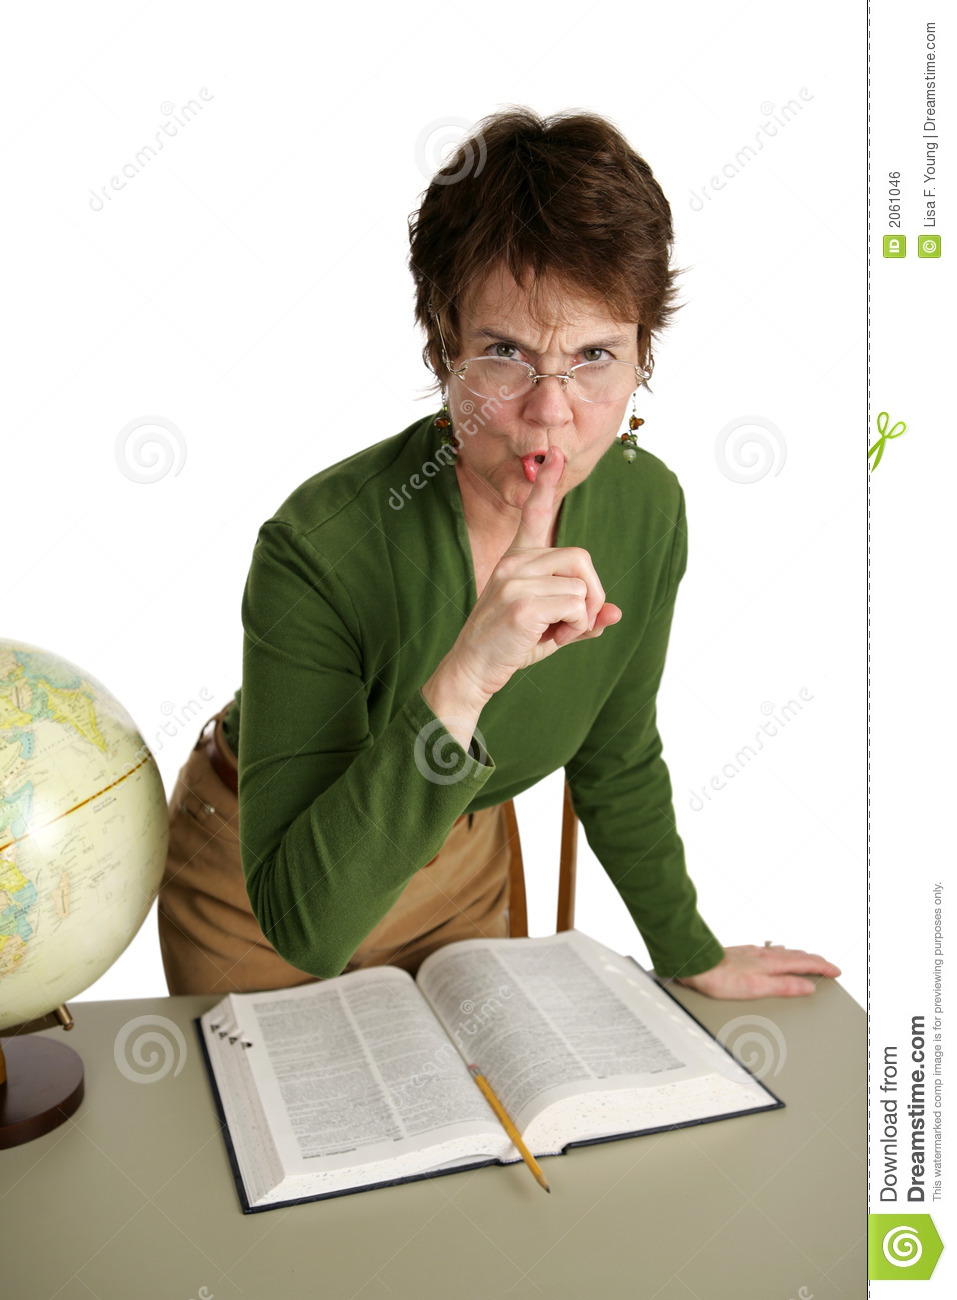 librarian quiet royalty free stock image image 2061046